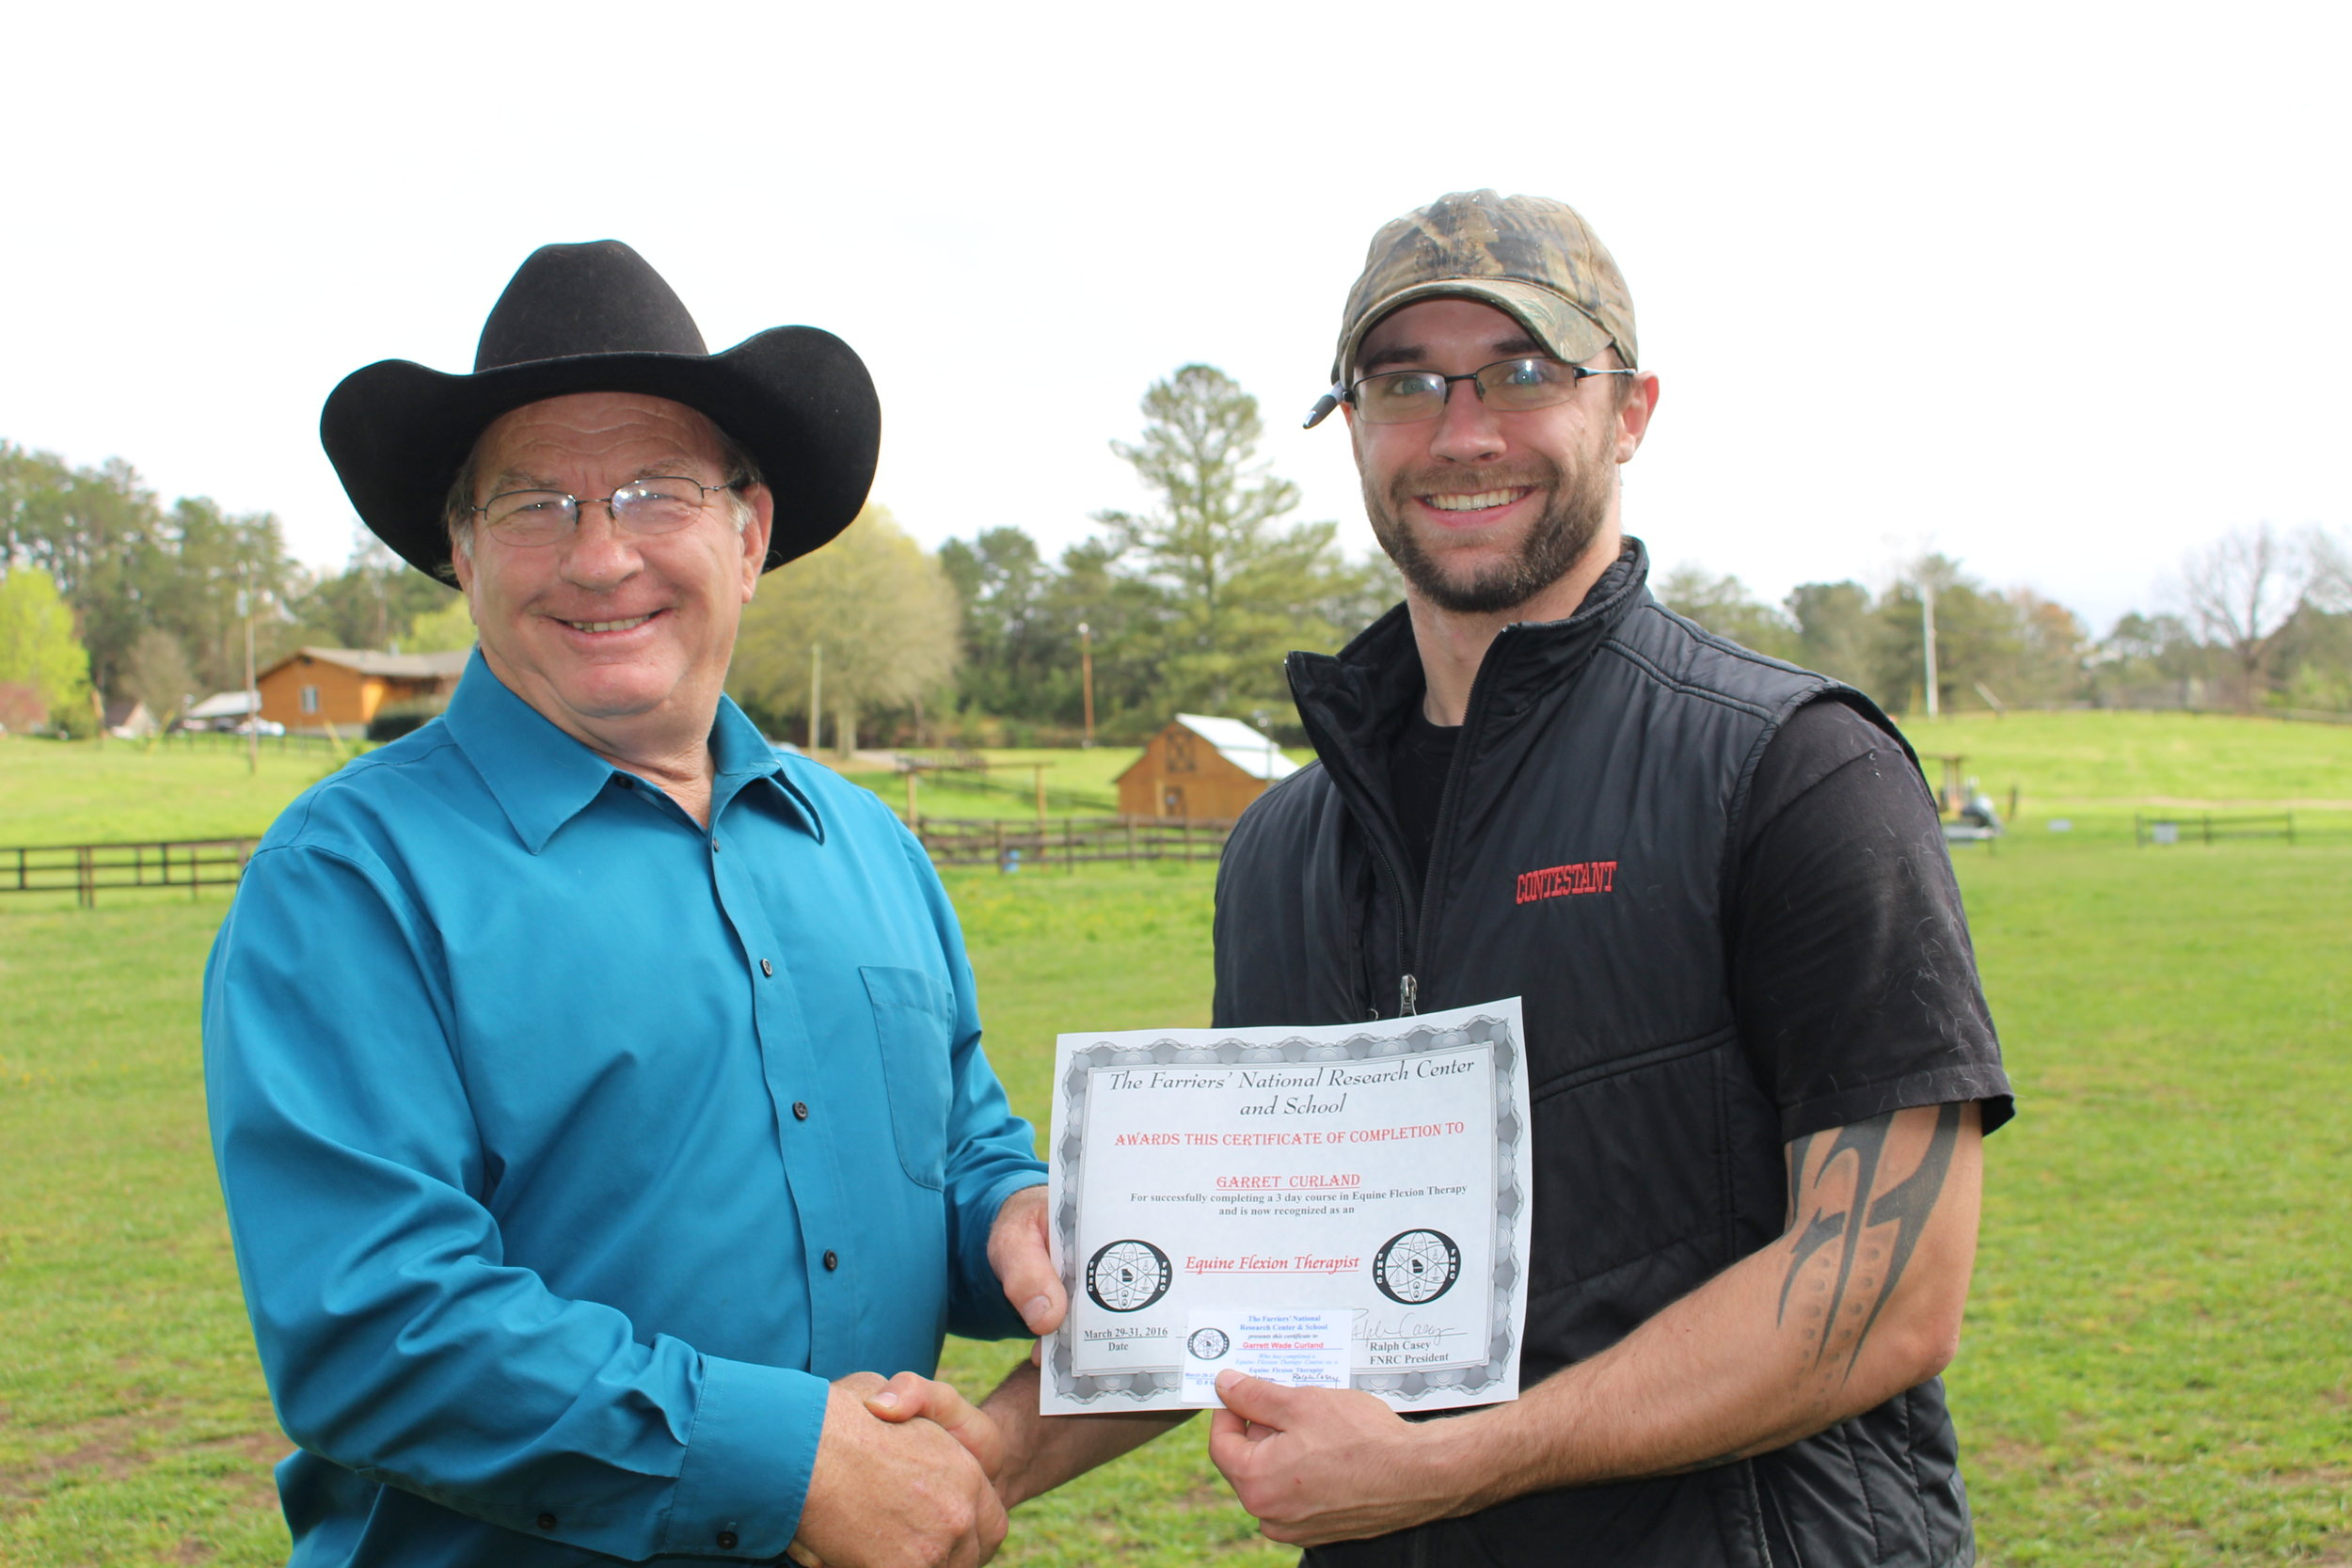 EFT graduate Garrett Curland of Pennsylvania with Dan Marcum, Instructor at the FNRC in Georgia.JPG